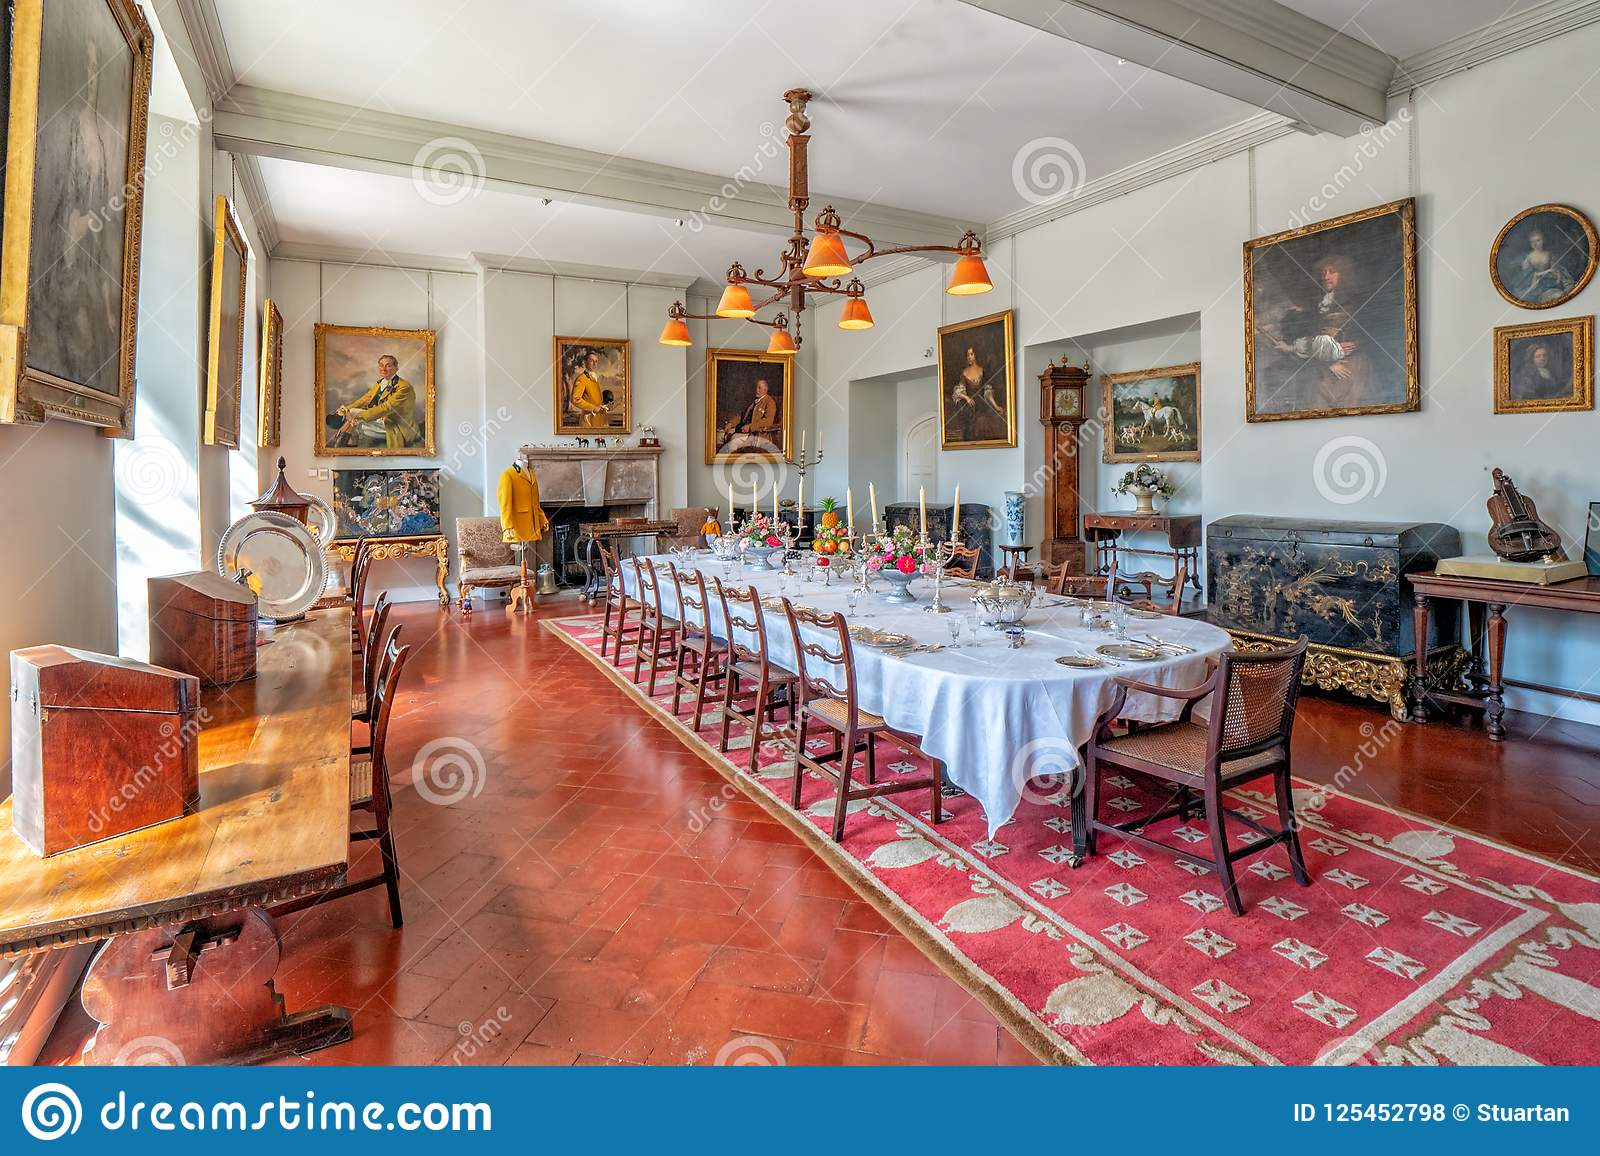 The Formal Dining Room In The Famous Historic Mediaeval Berkeley Castle In  Gloucestershire, England. This Was Previously The Billiard Room And The  Place ...